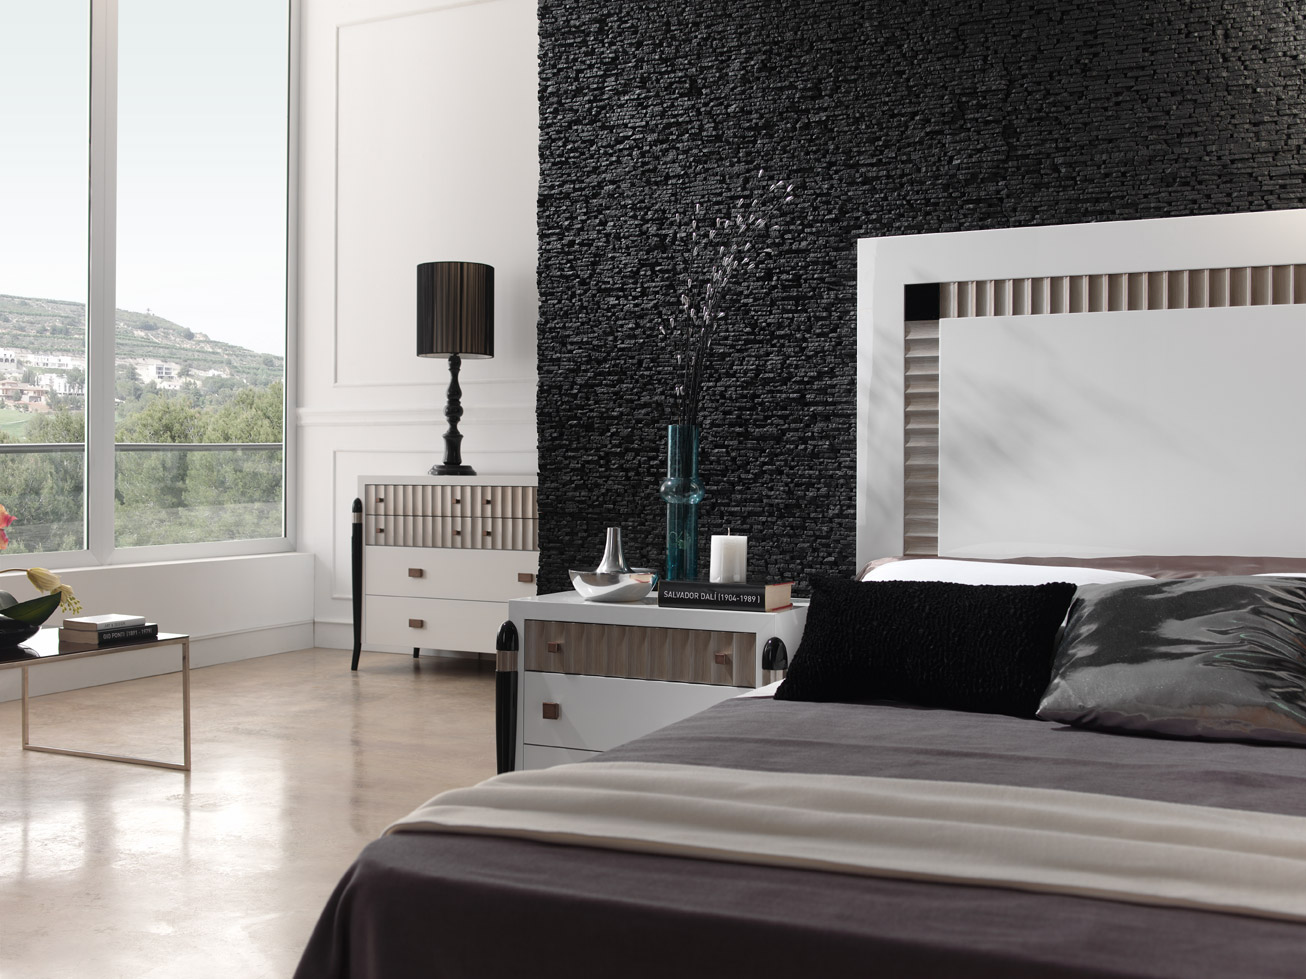 steinoptik onlineshop steinwand grau innen. Black Bedroom Furniture Sets. Home Design Ideas